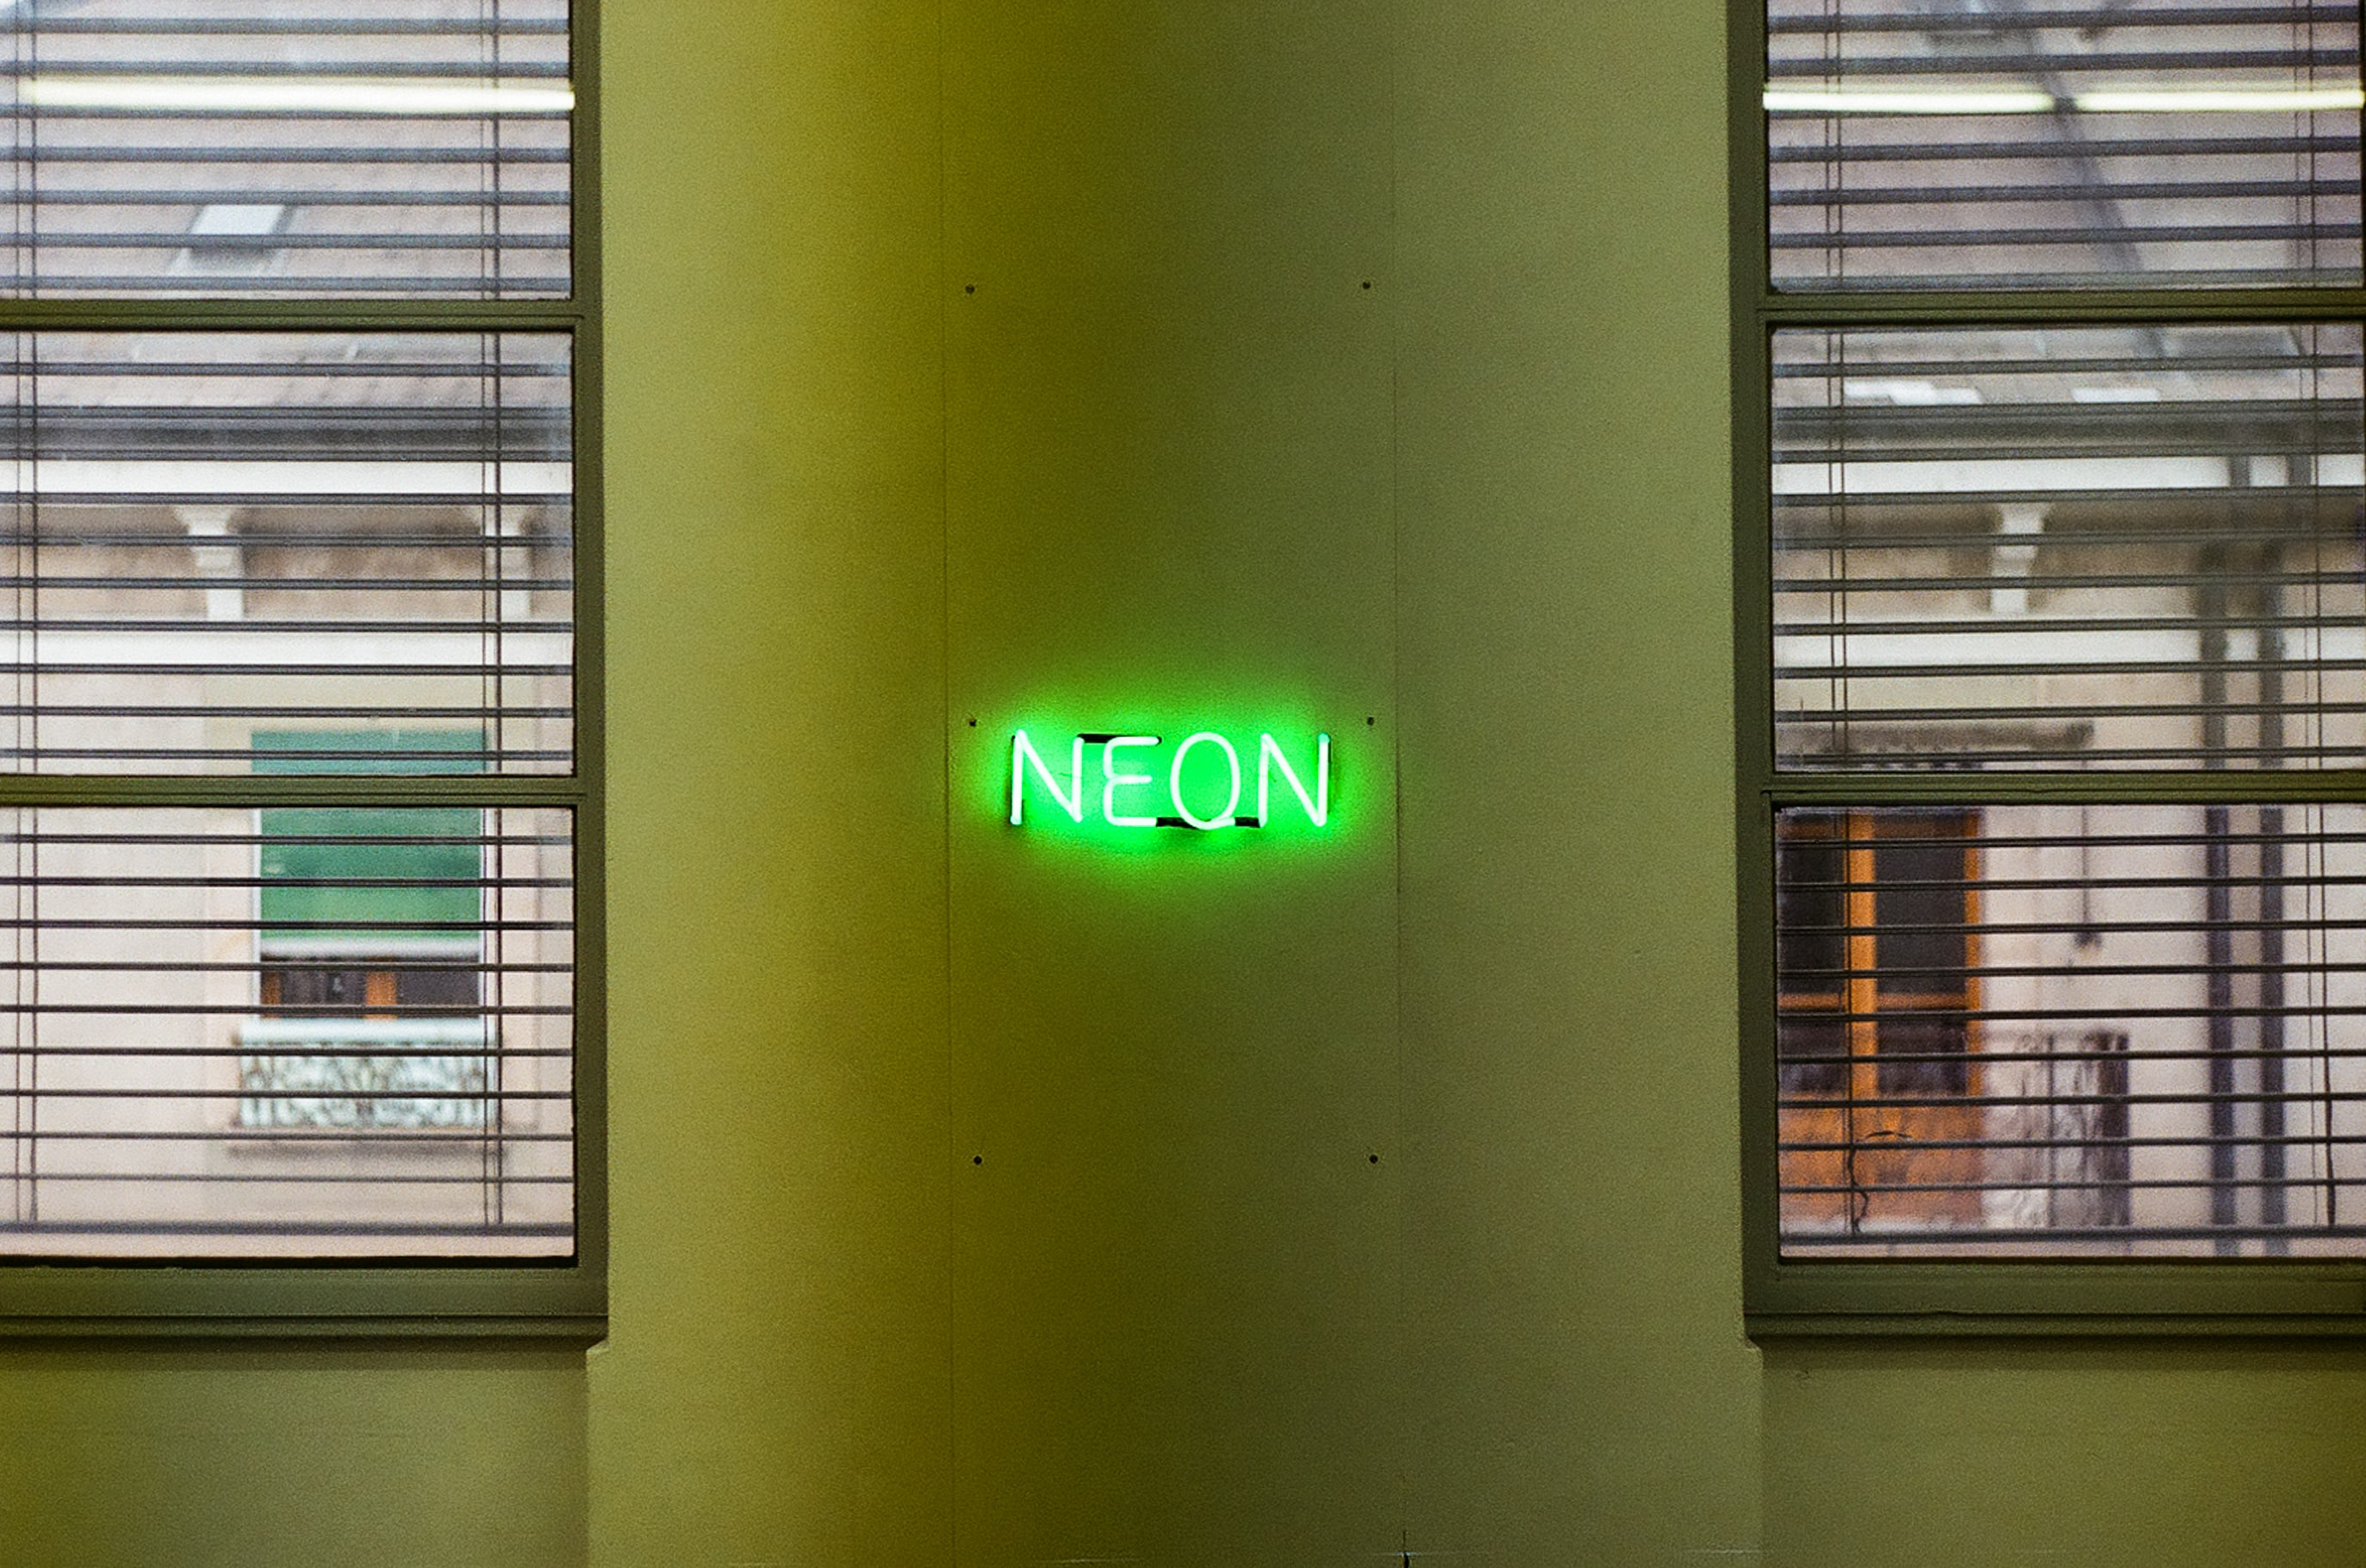 turned on neon signage on wall during daytime